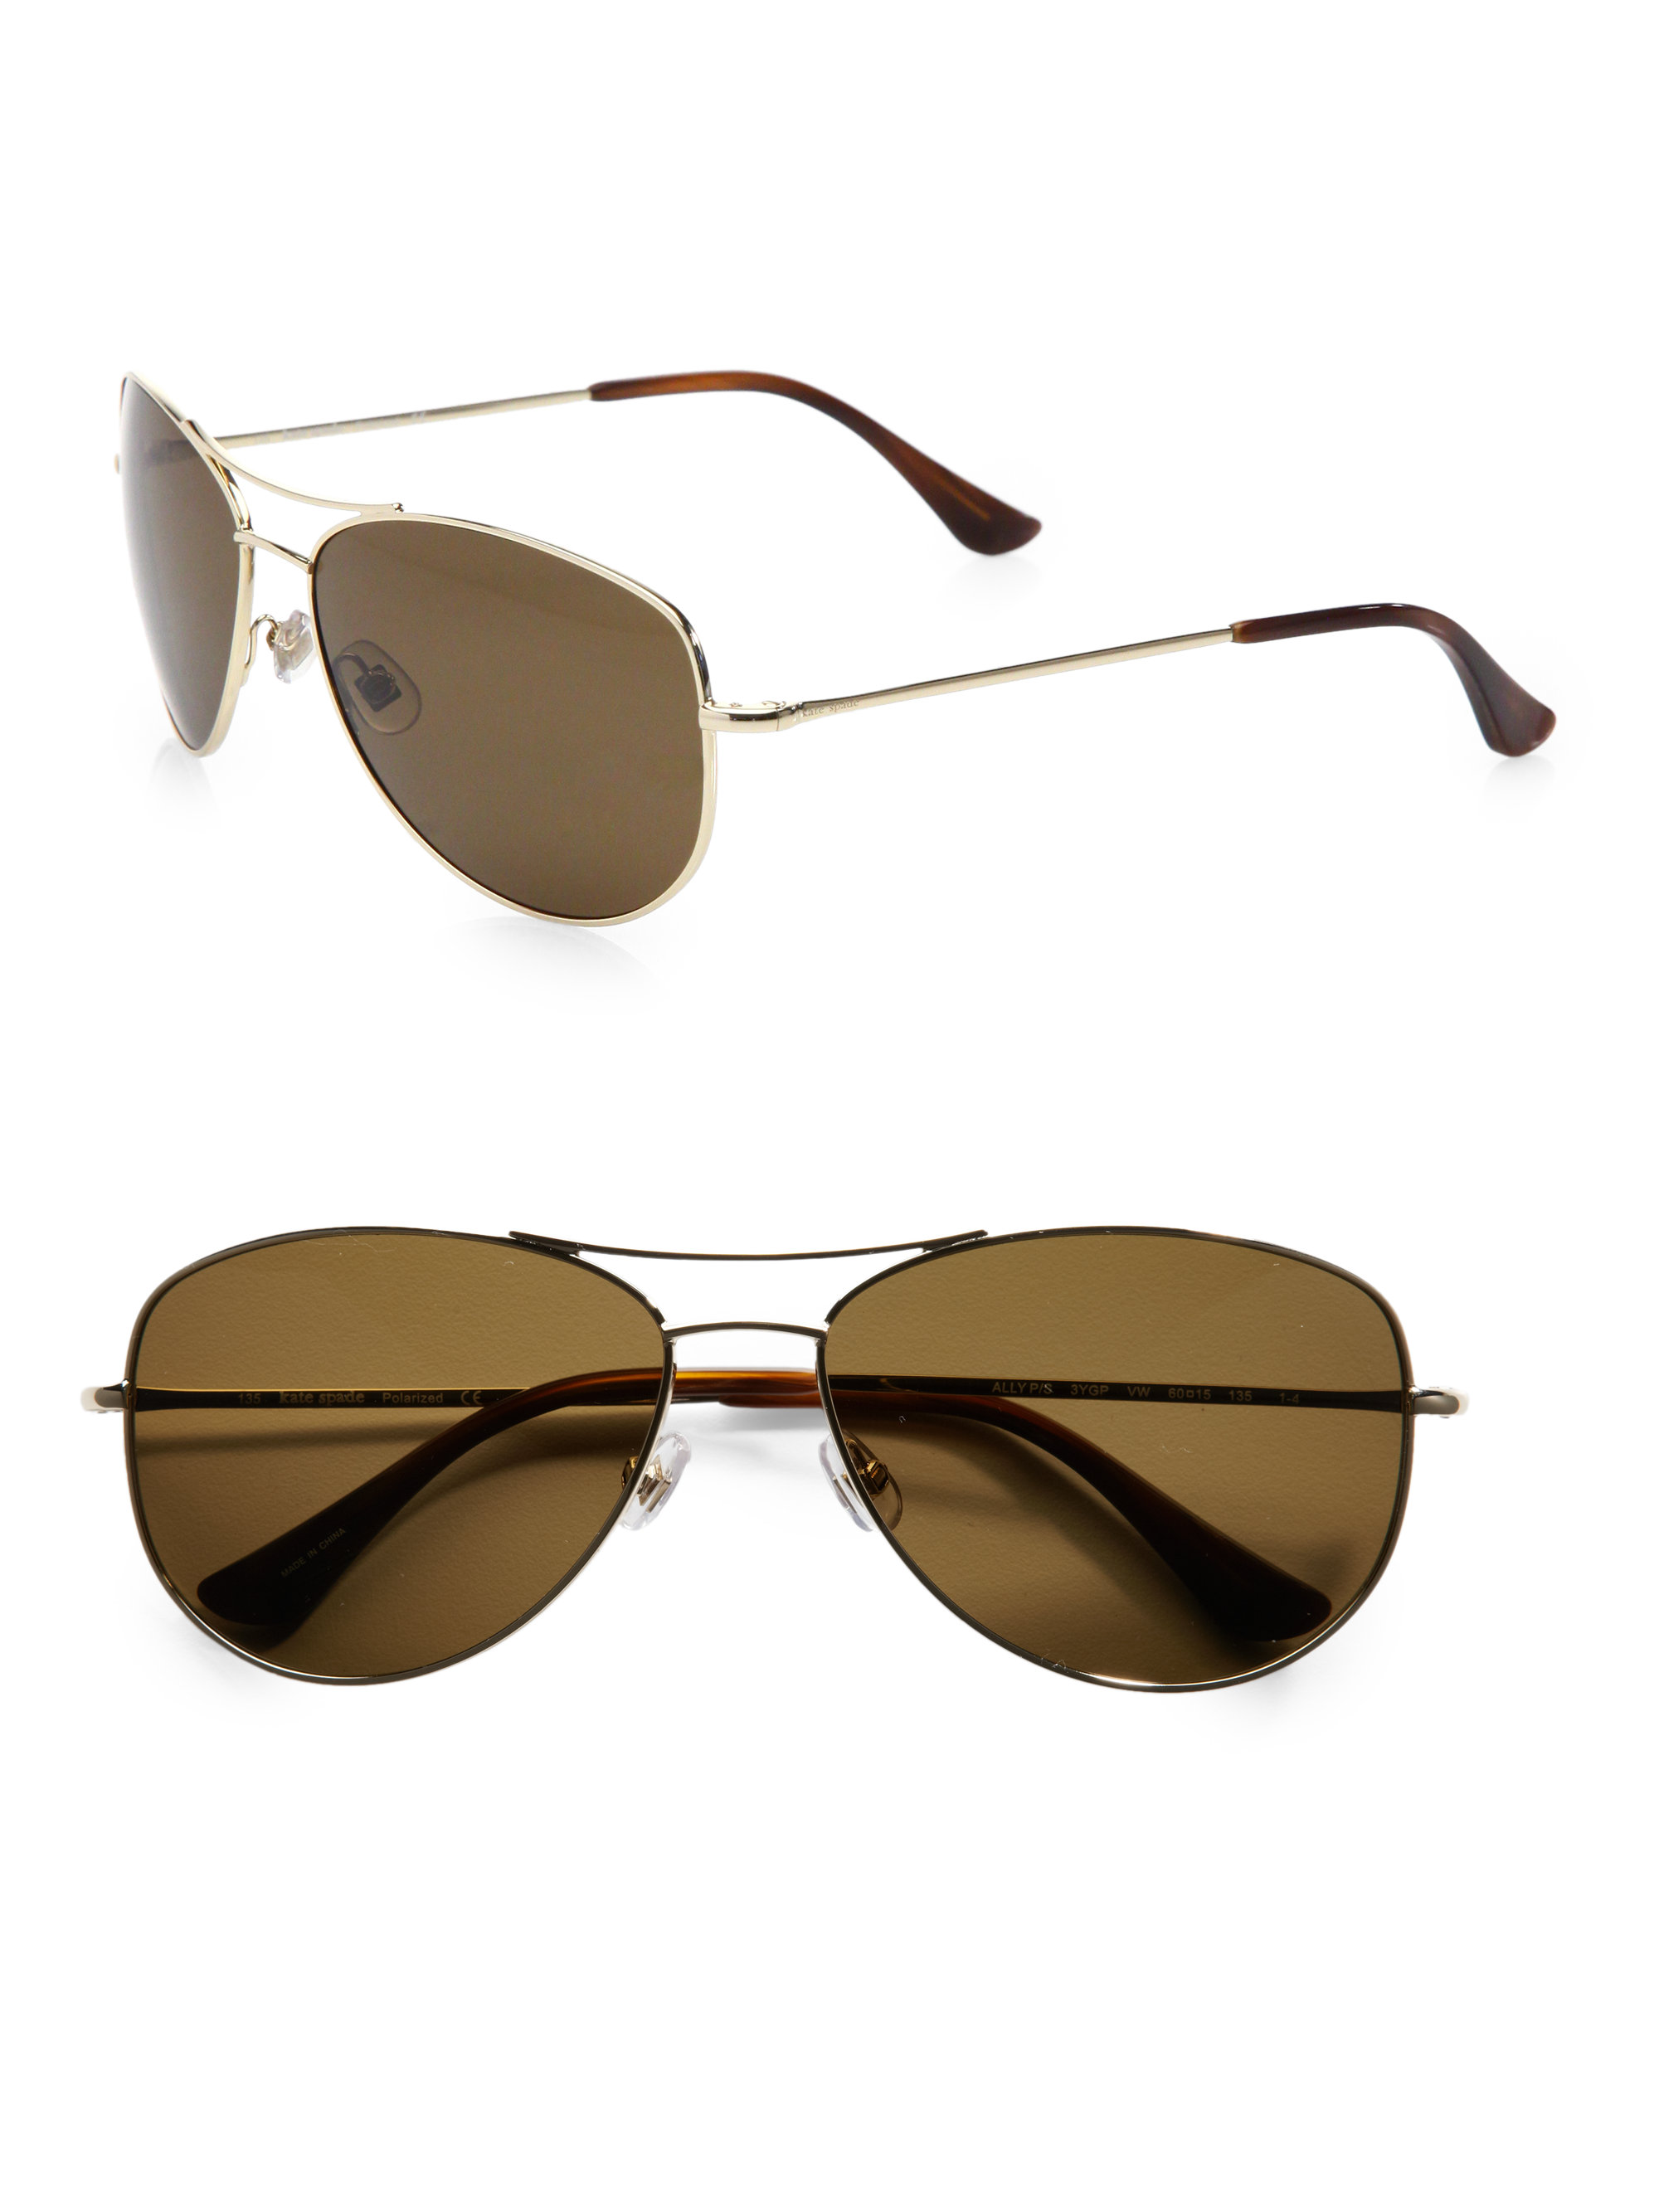 911a1552d7cb Kate Spade Ally Polarized Metal Aviator Sunglasses in Brown - Lyst